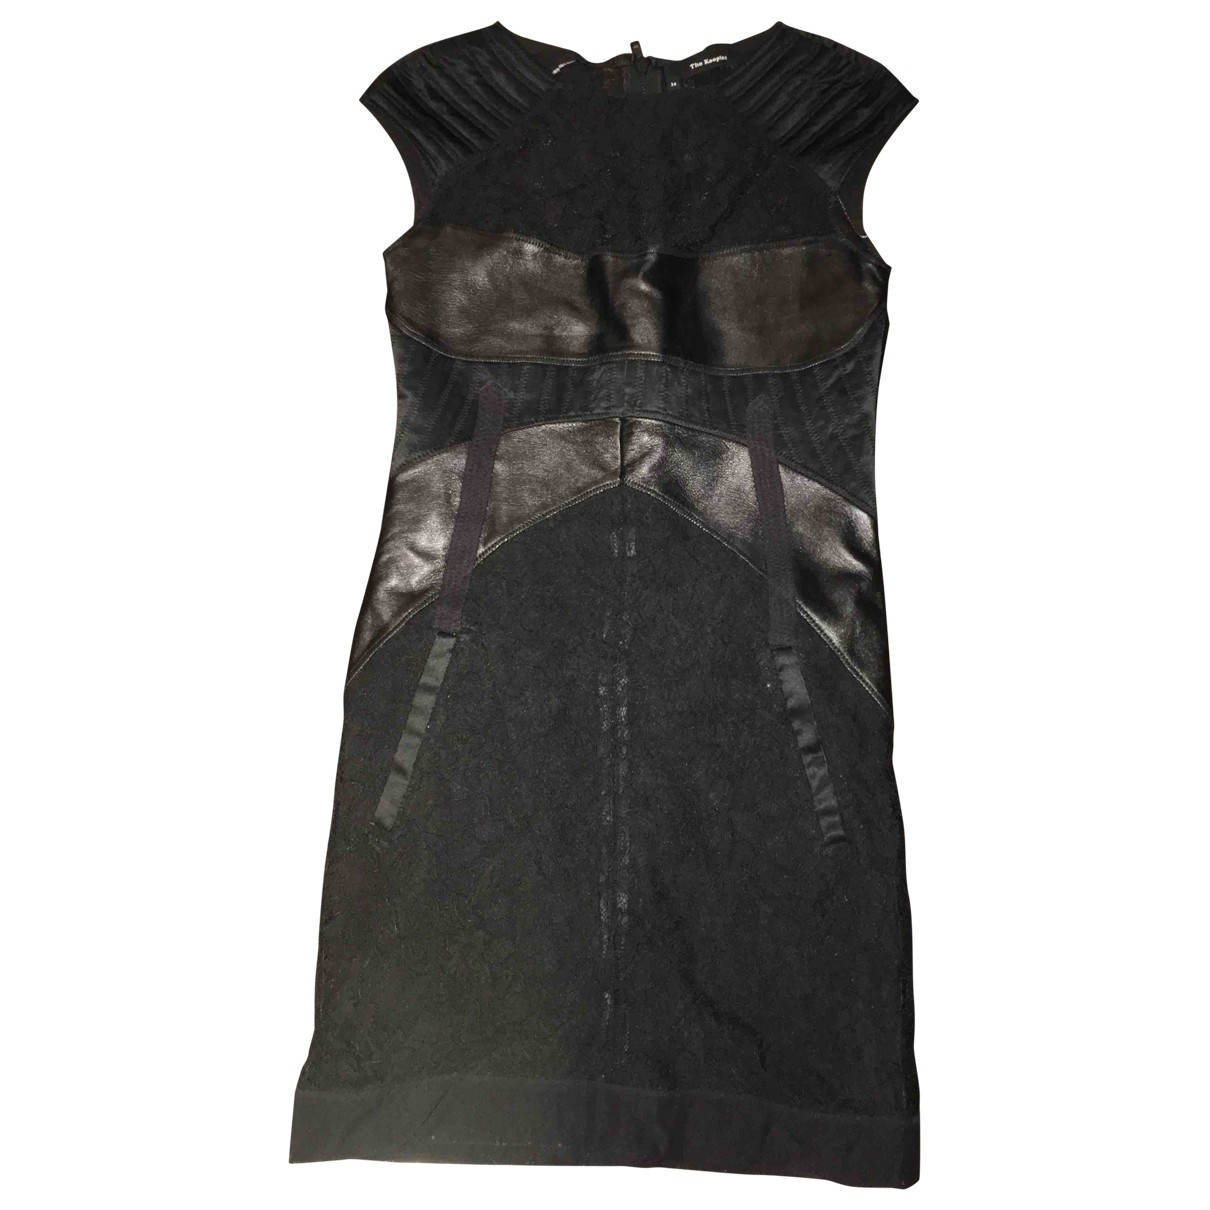 The Kooples \N Black Lace dress for Women 34 FR